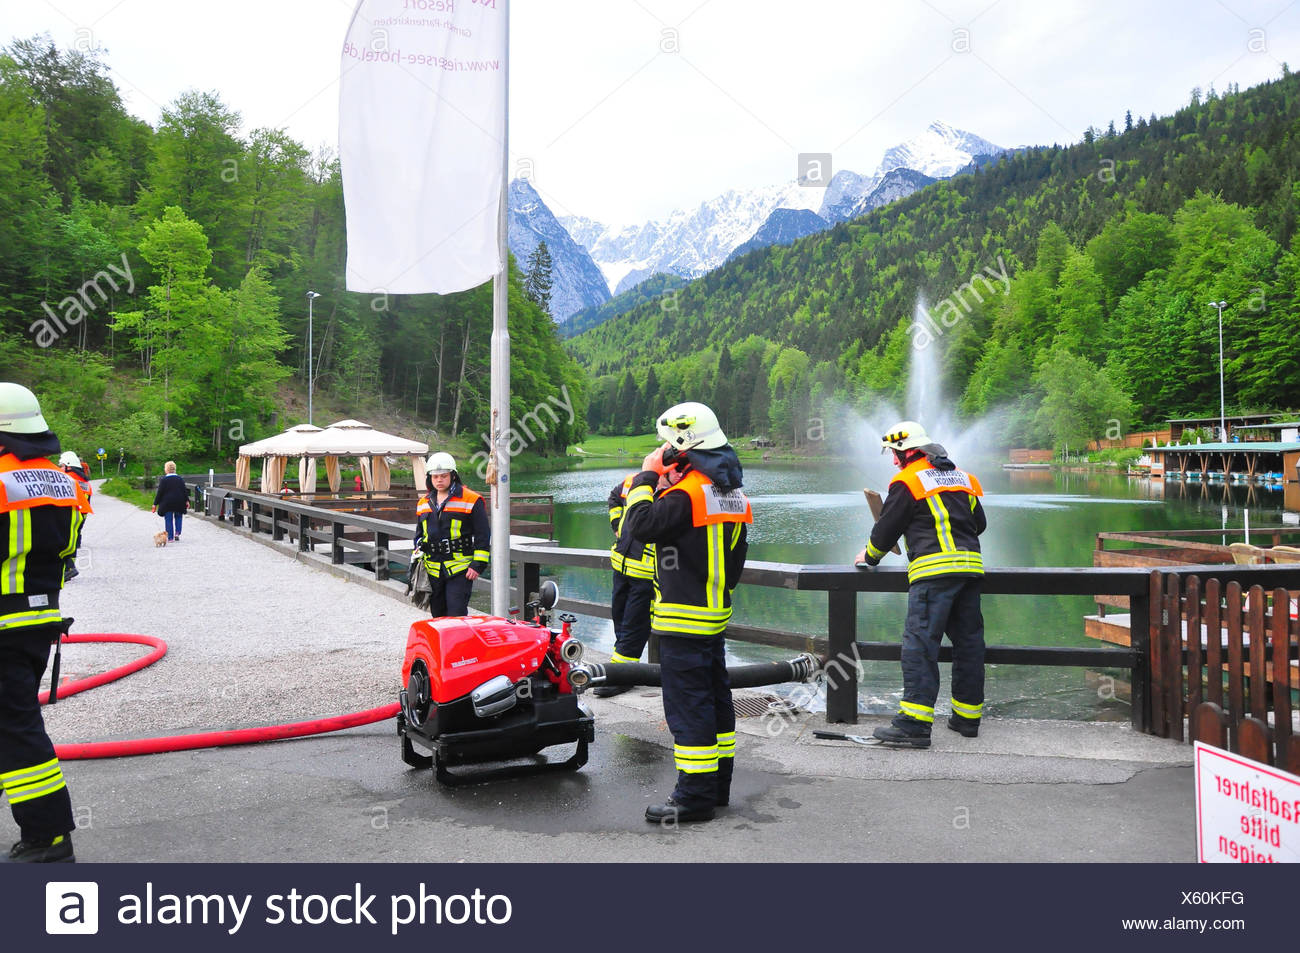 Withdrawal Stock Photos & Withdrawal Stock Images - Alamy